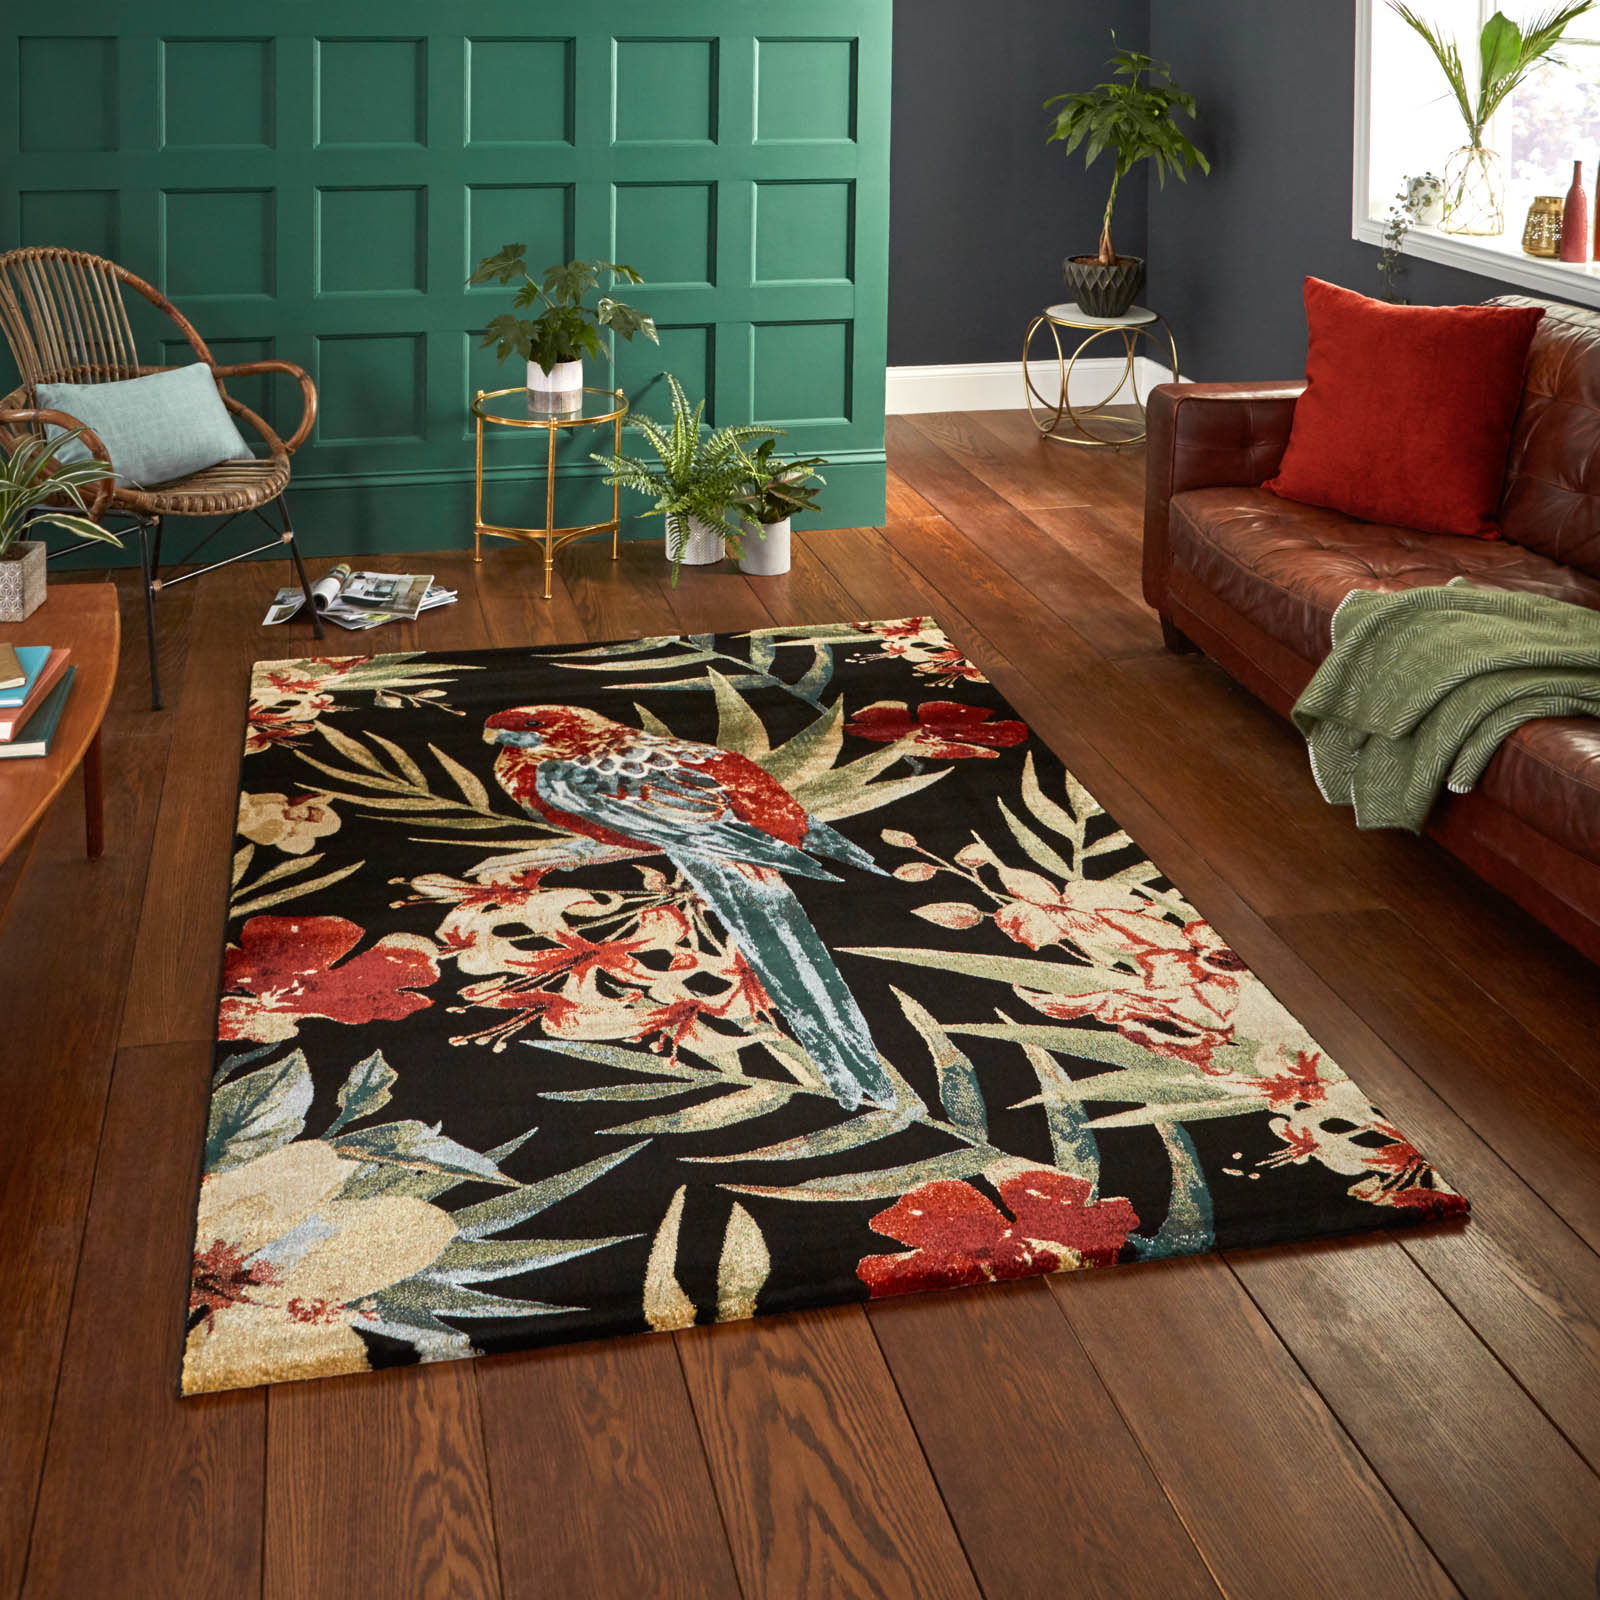 Mother's Day gift, Tropics Rugs 6093 in Black and Multi-colours